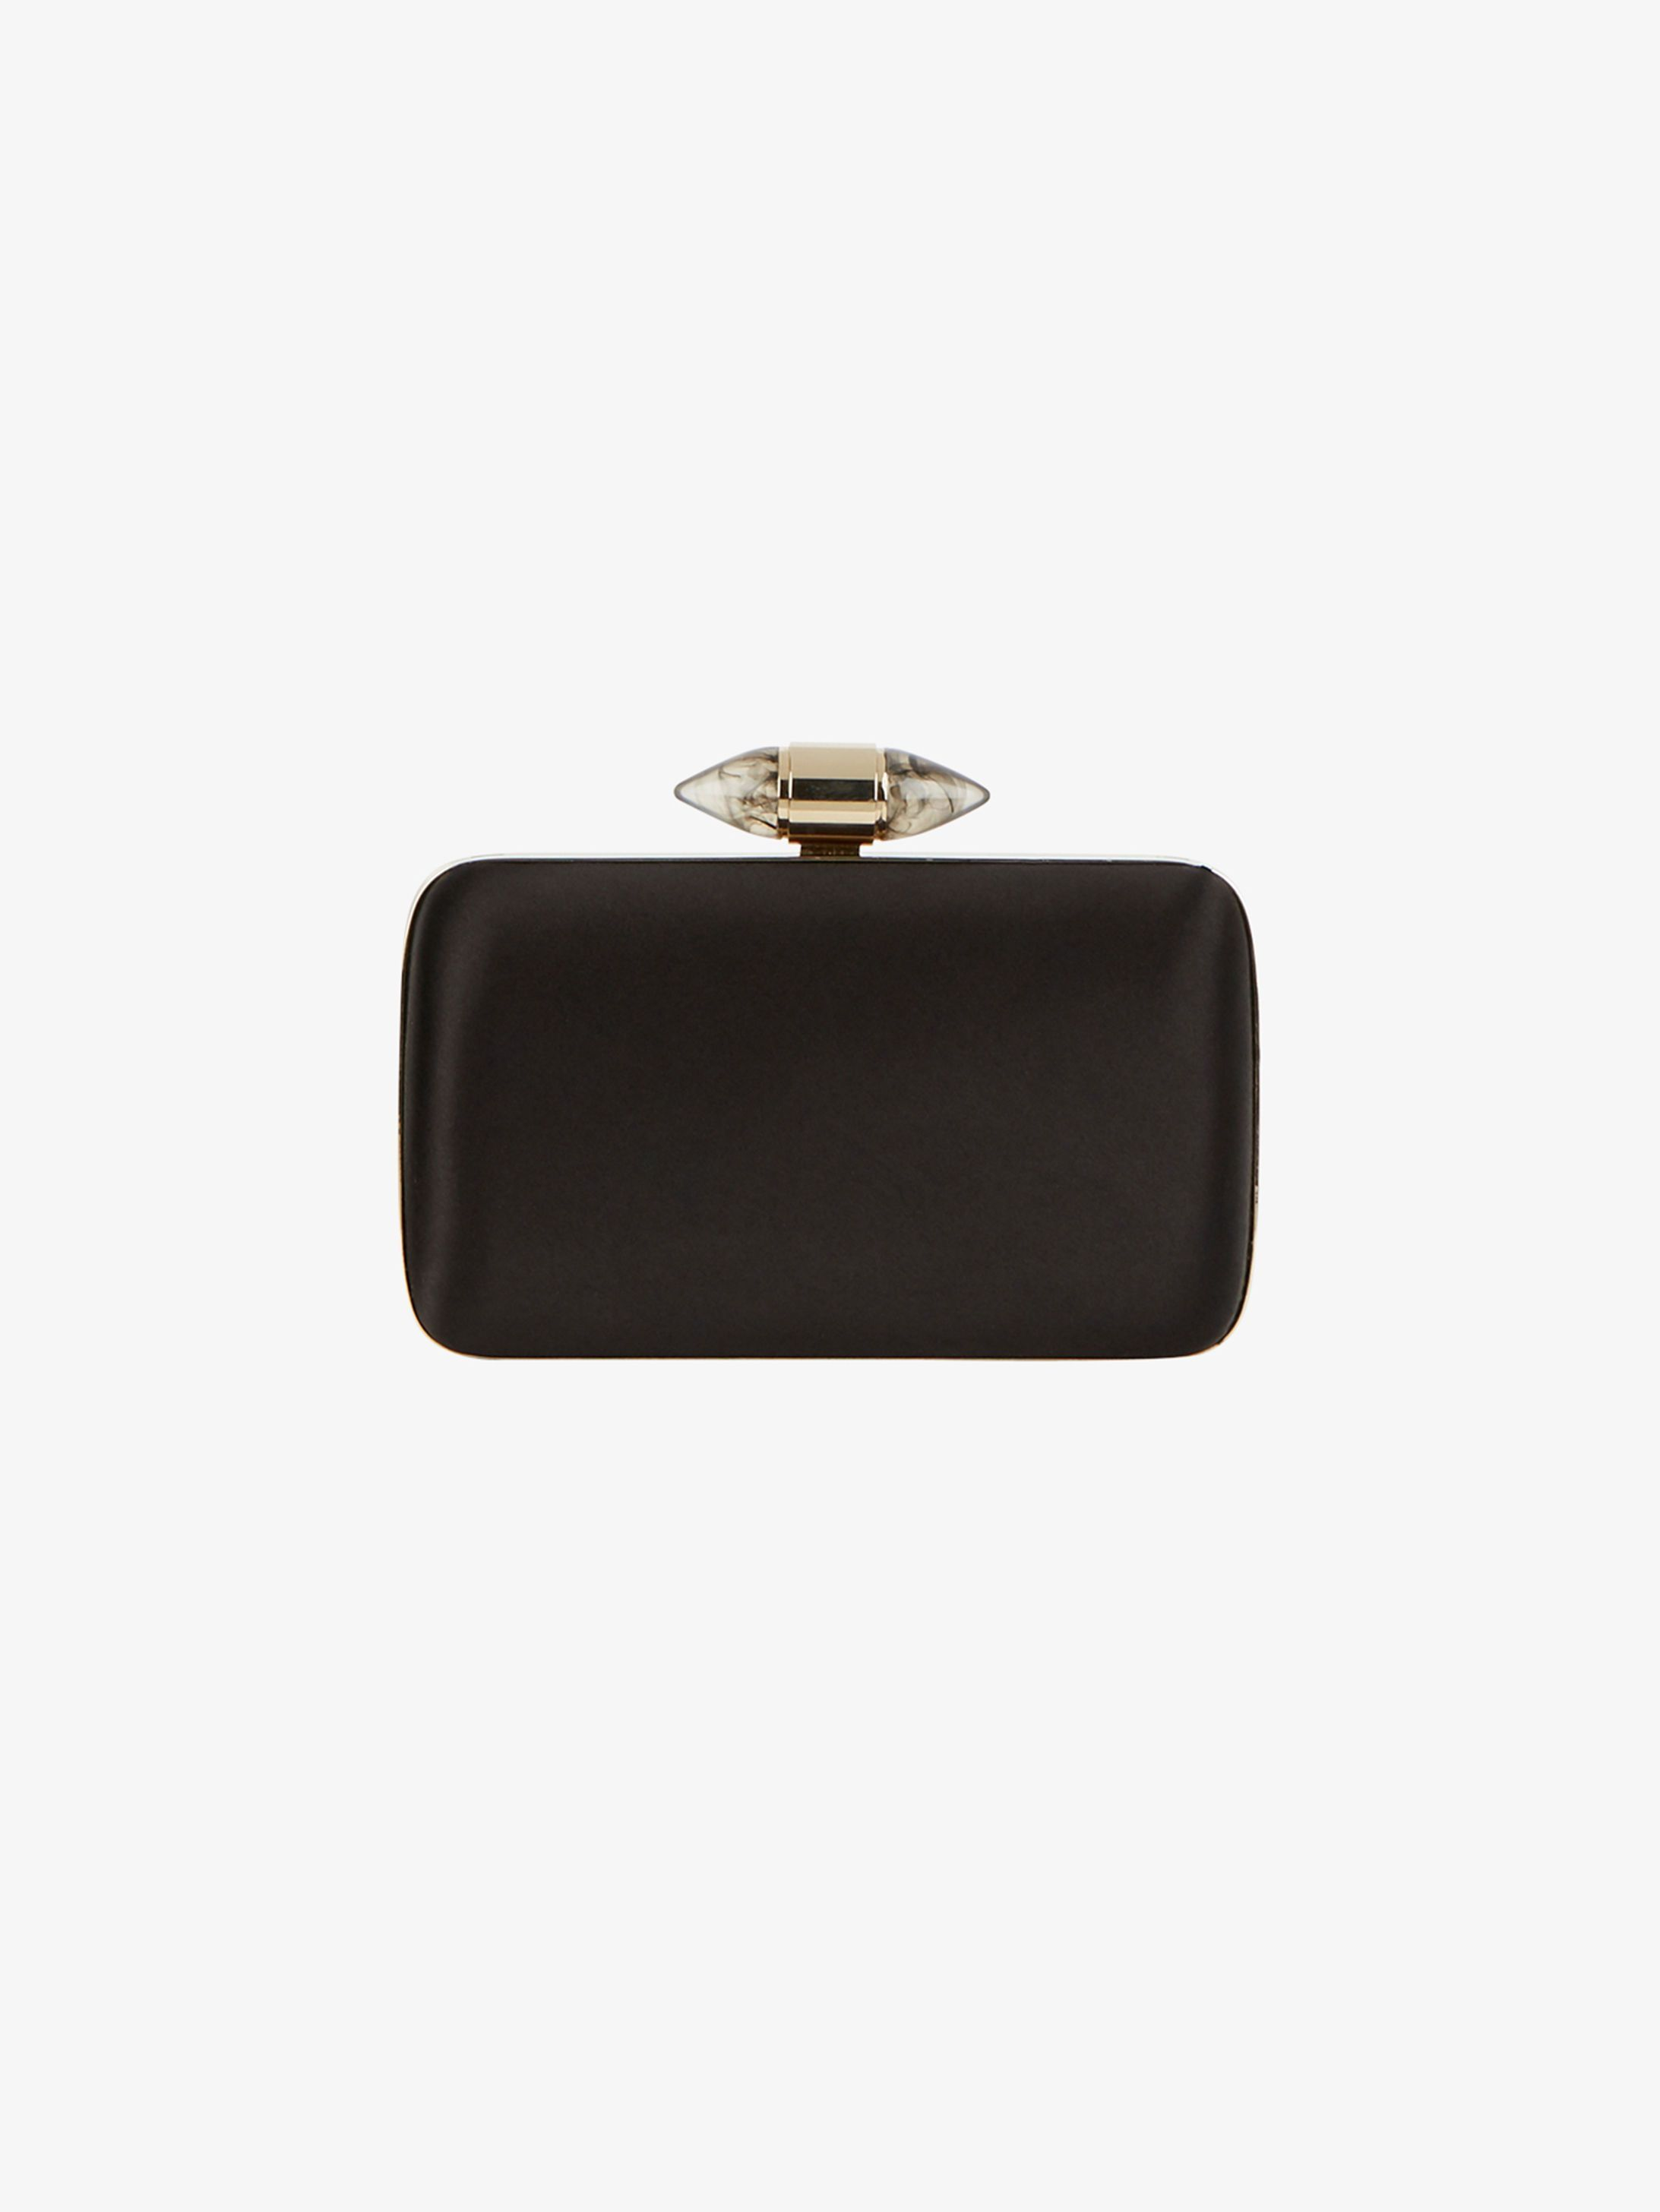 fb65f5b7cd8 Givenchy Black Satin Clutch with Jewel Clasp..  Givenchy  clutch  purse   satin  accessorise  MeghanMarkle  MarkleSparkle DuchessofSussex   RoyalVisit2018 ...